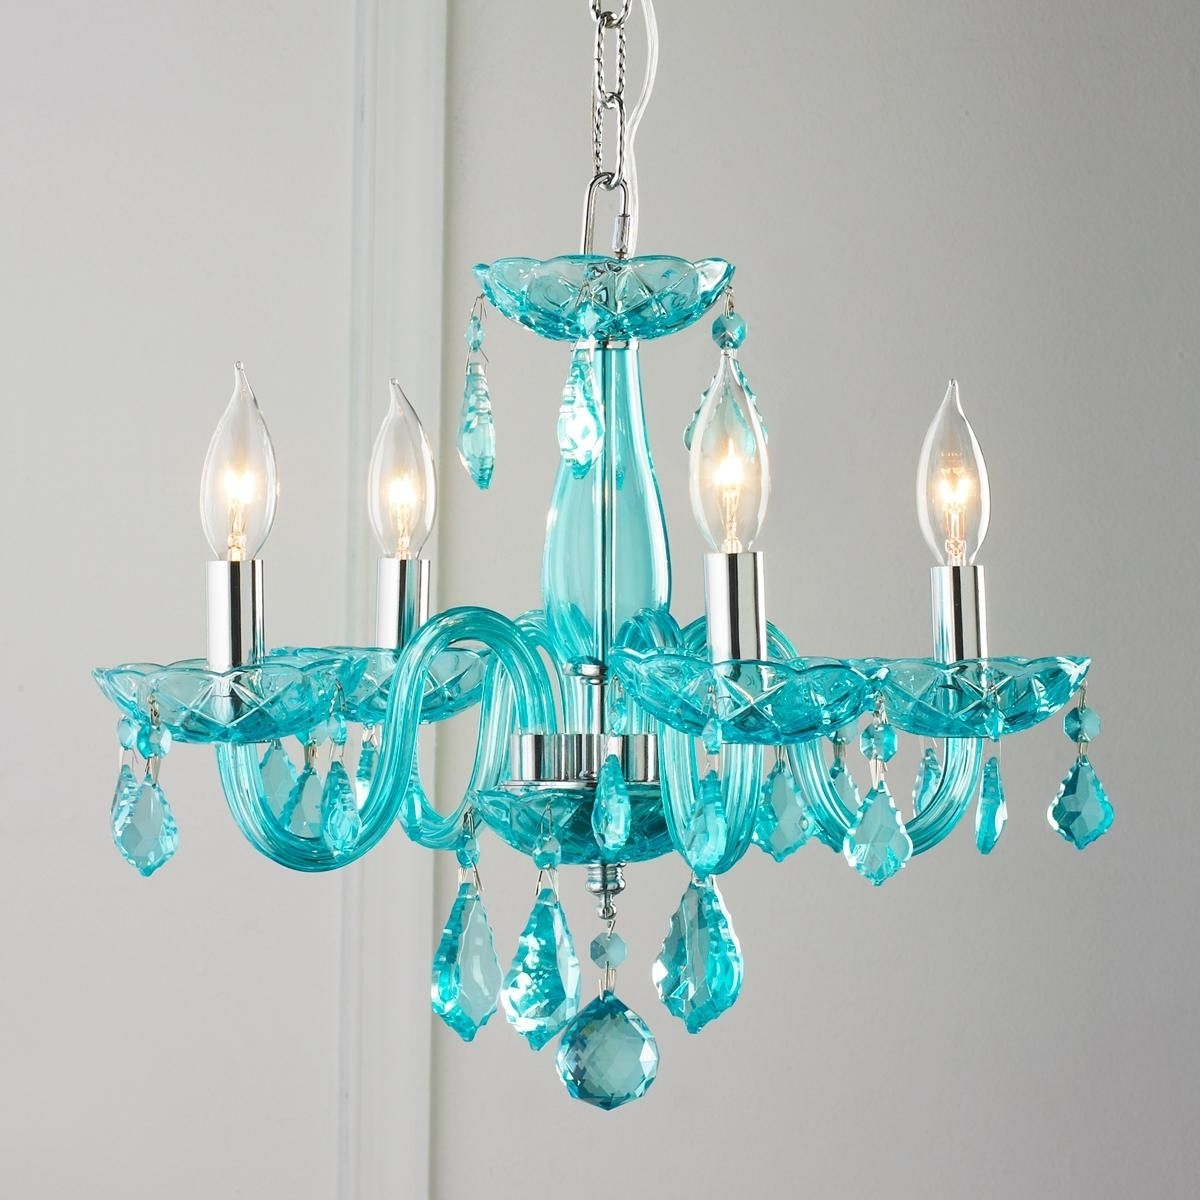 Mini Chandelier, Ceiling Canopy And In Most Recent Turquoise Chandelier Lights (View 18 of 20)